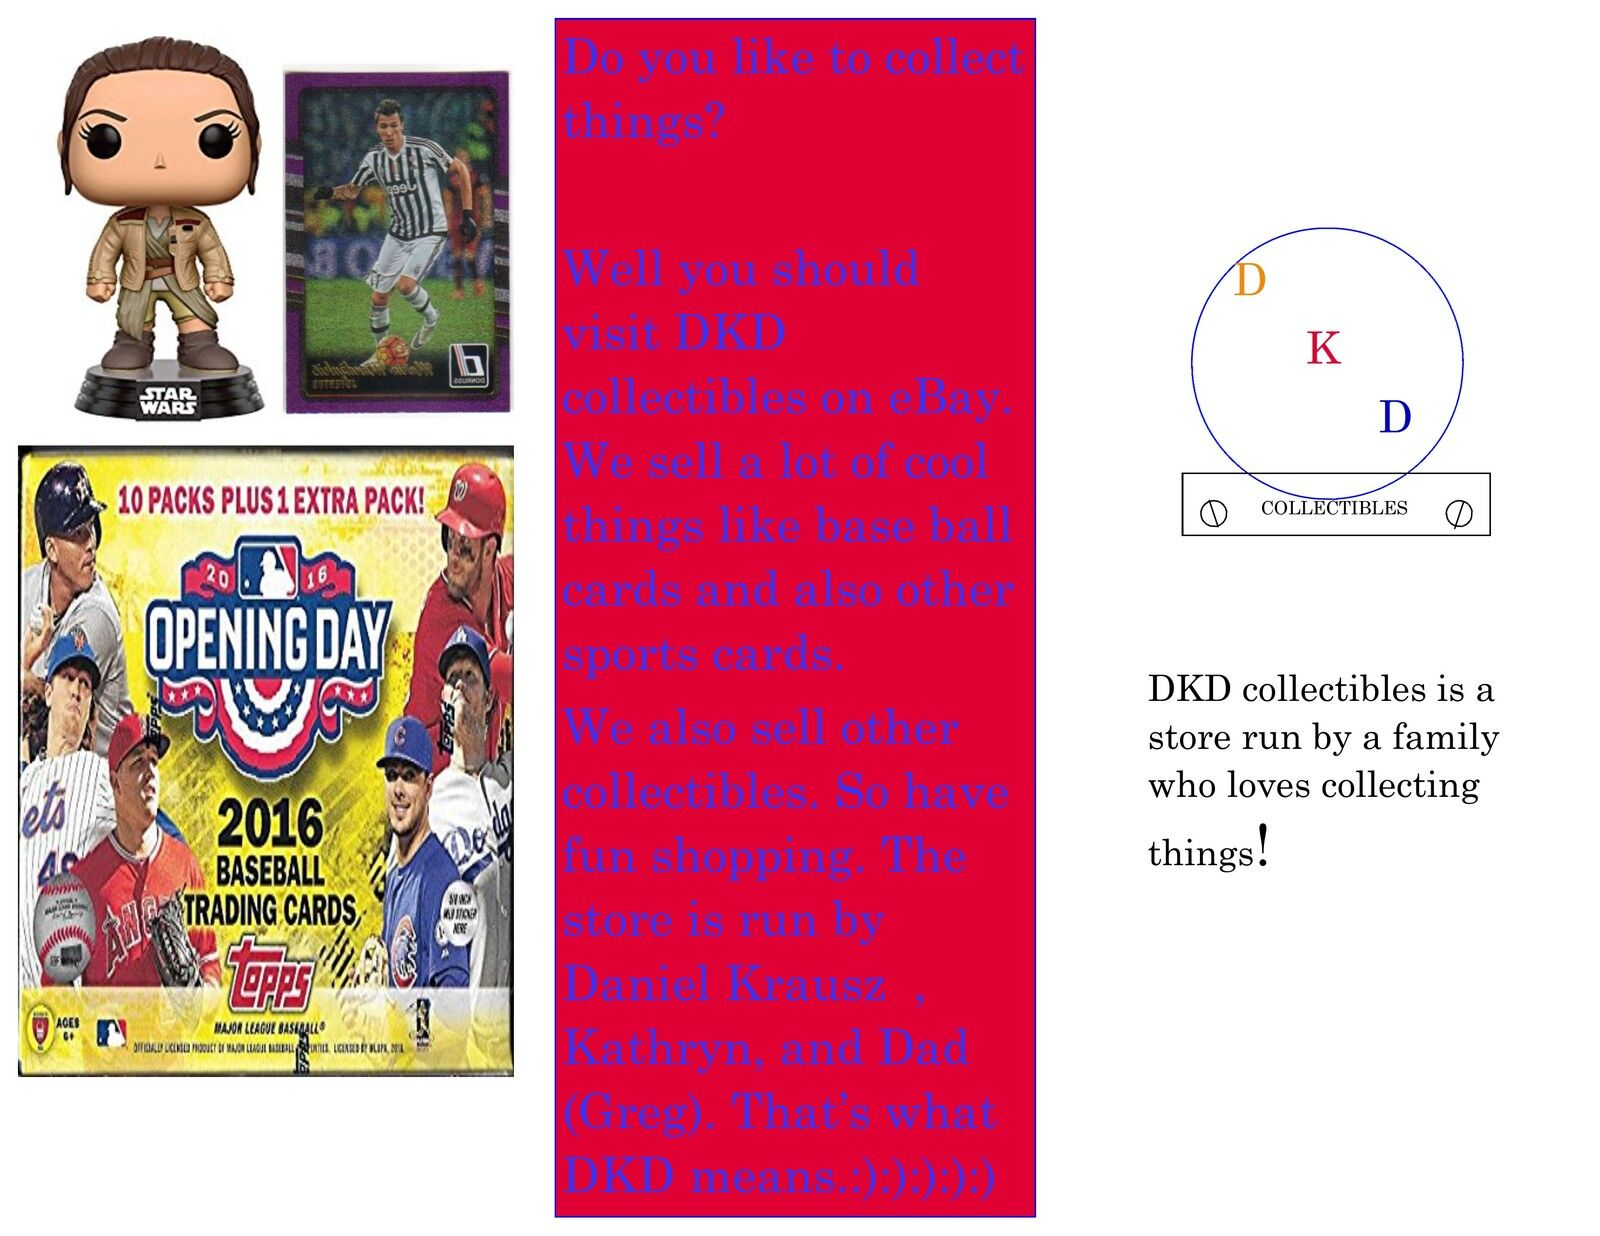 DKD Collectibles